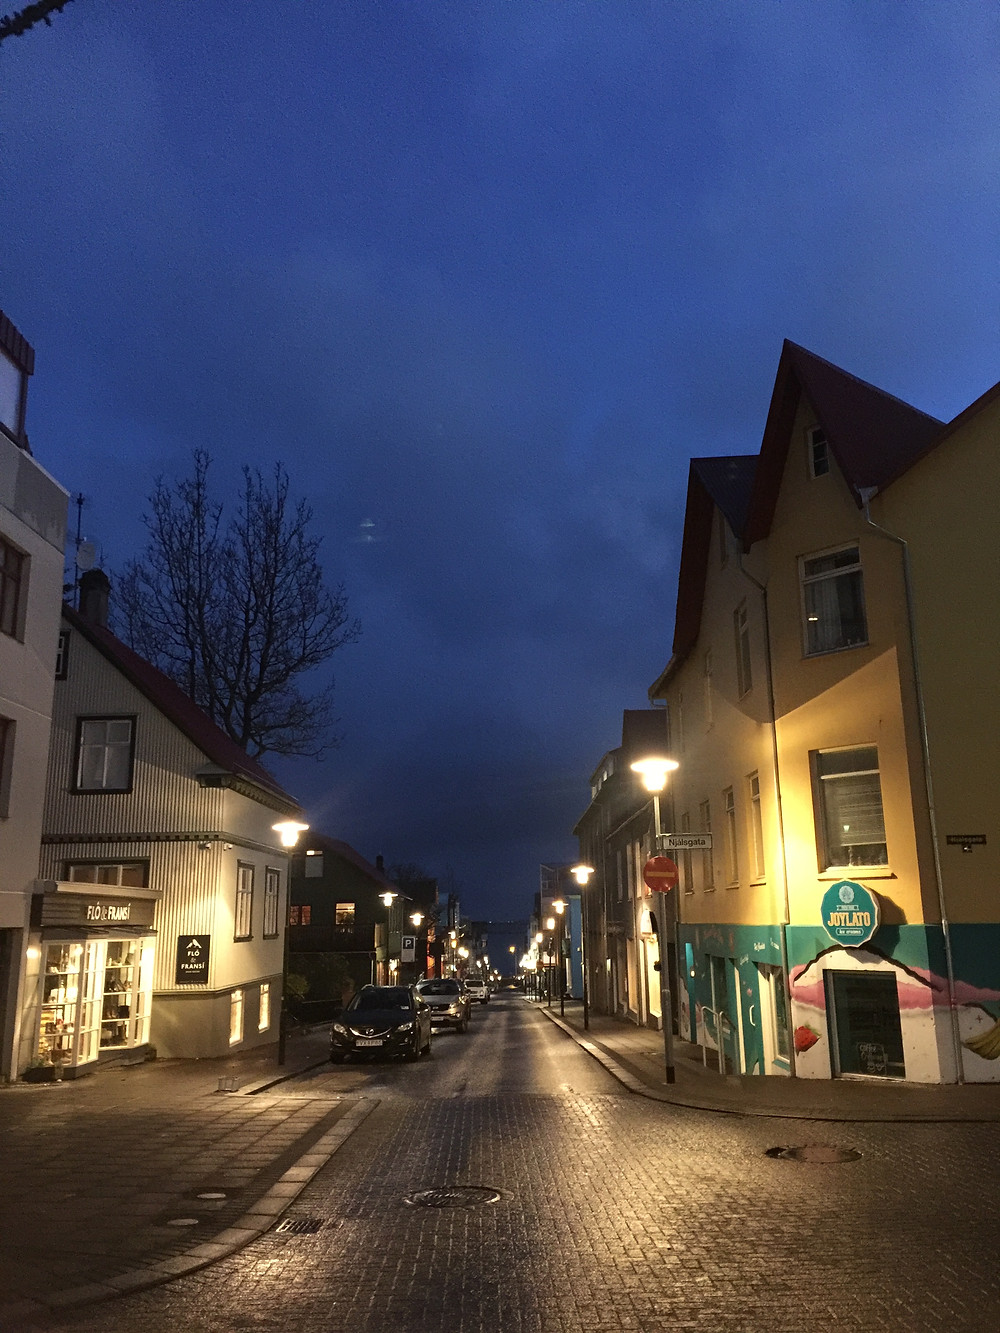 Another lovely street view of Klapparstígur, directly towards the sea.